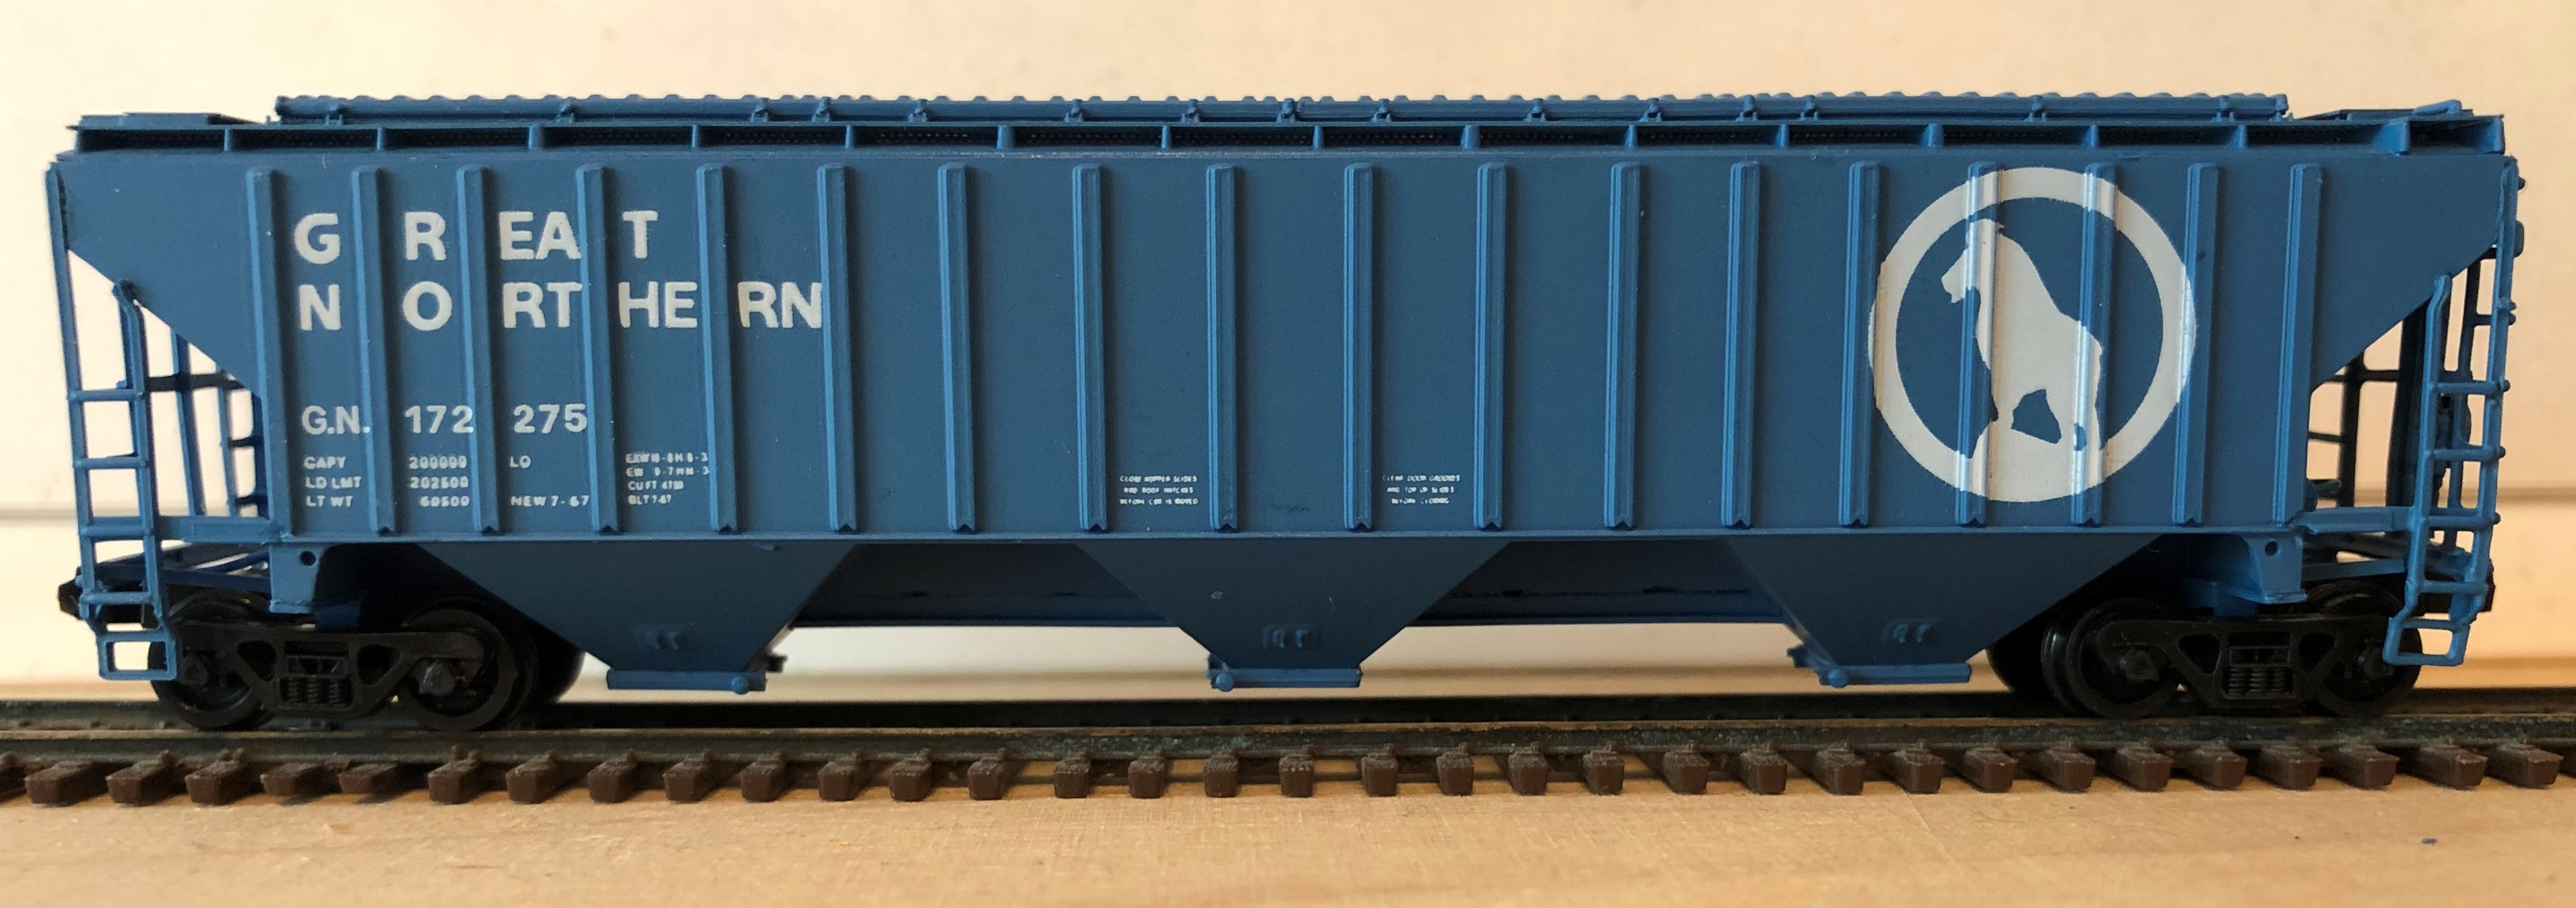 N Scale - Brooklyn Locomotive Works - BLW-1136A-B2 - Covered Hopper, 3-Bay, Thrall 4750 - Great Northern - 172275